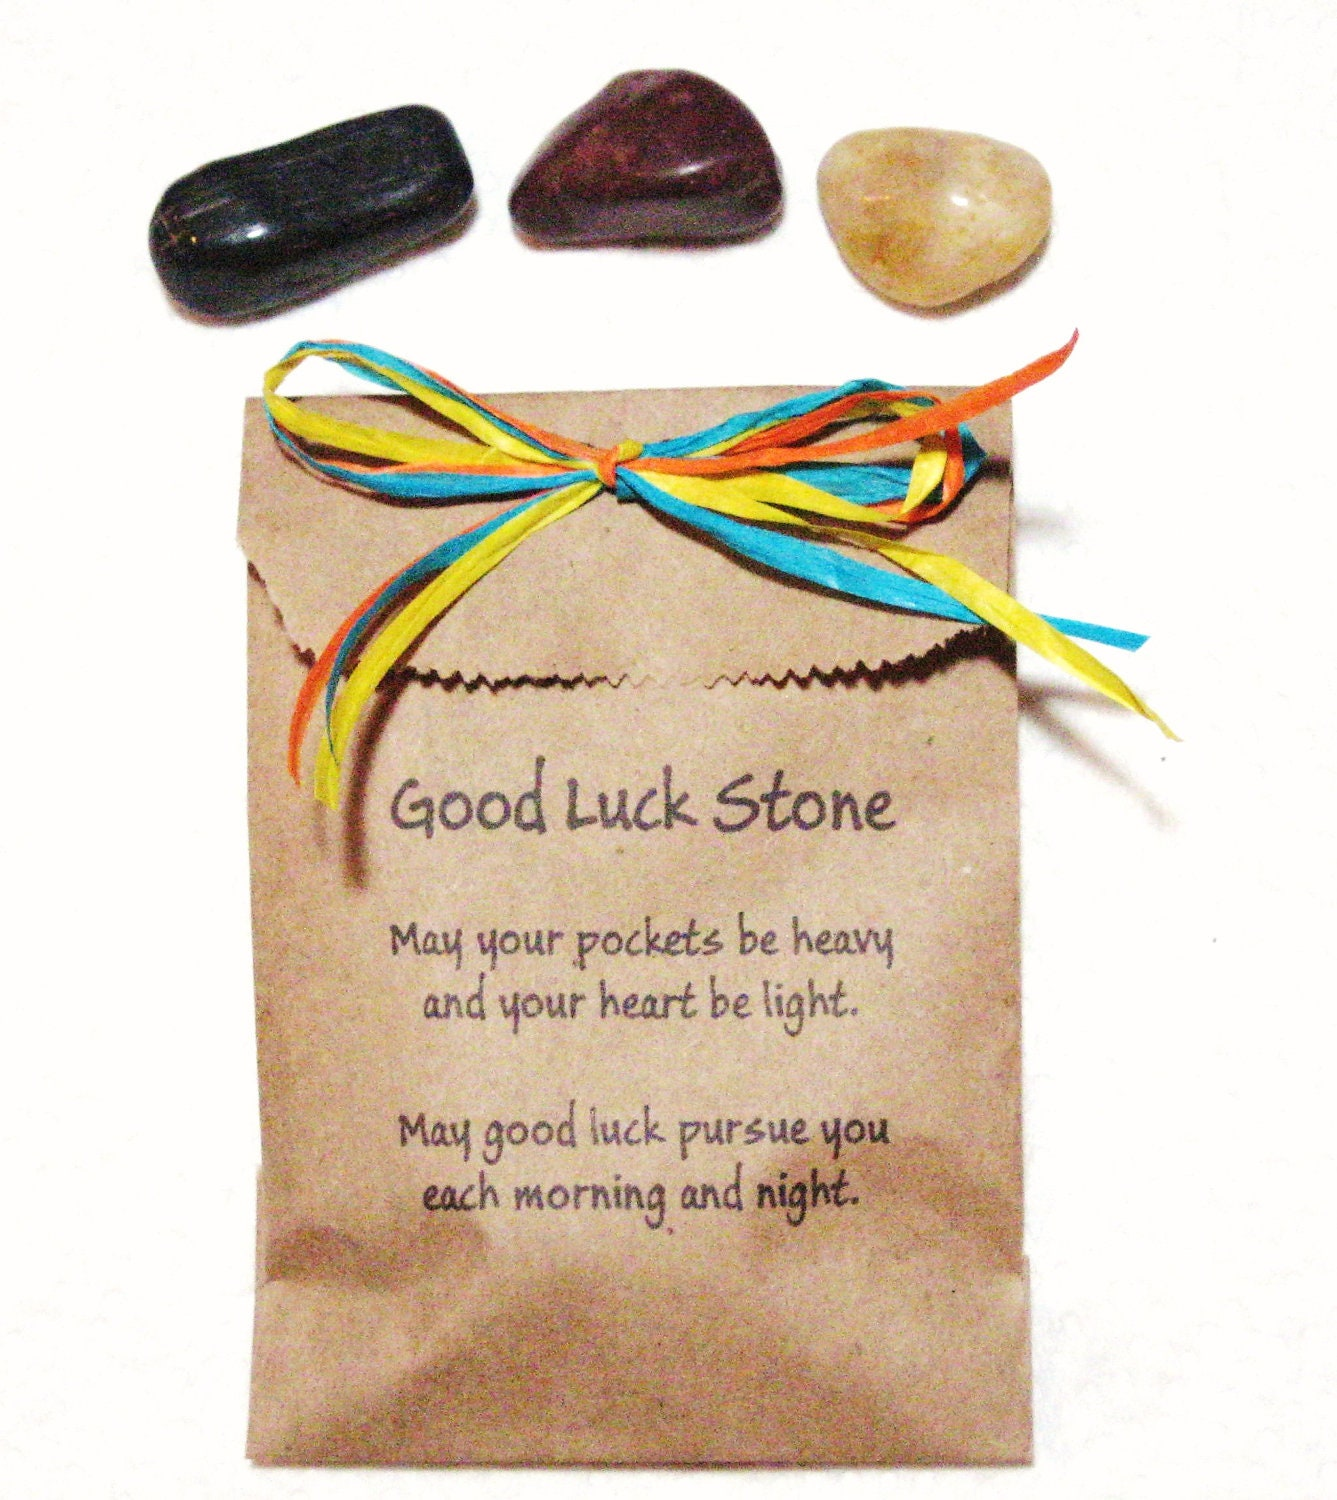 Find Good Luck Stone : Good luck stone by mycreativeclutter on etsy